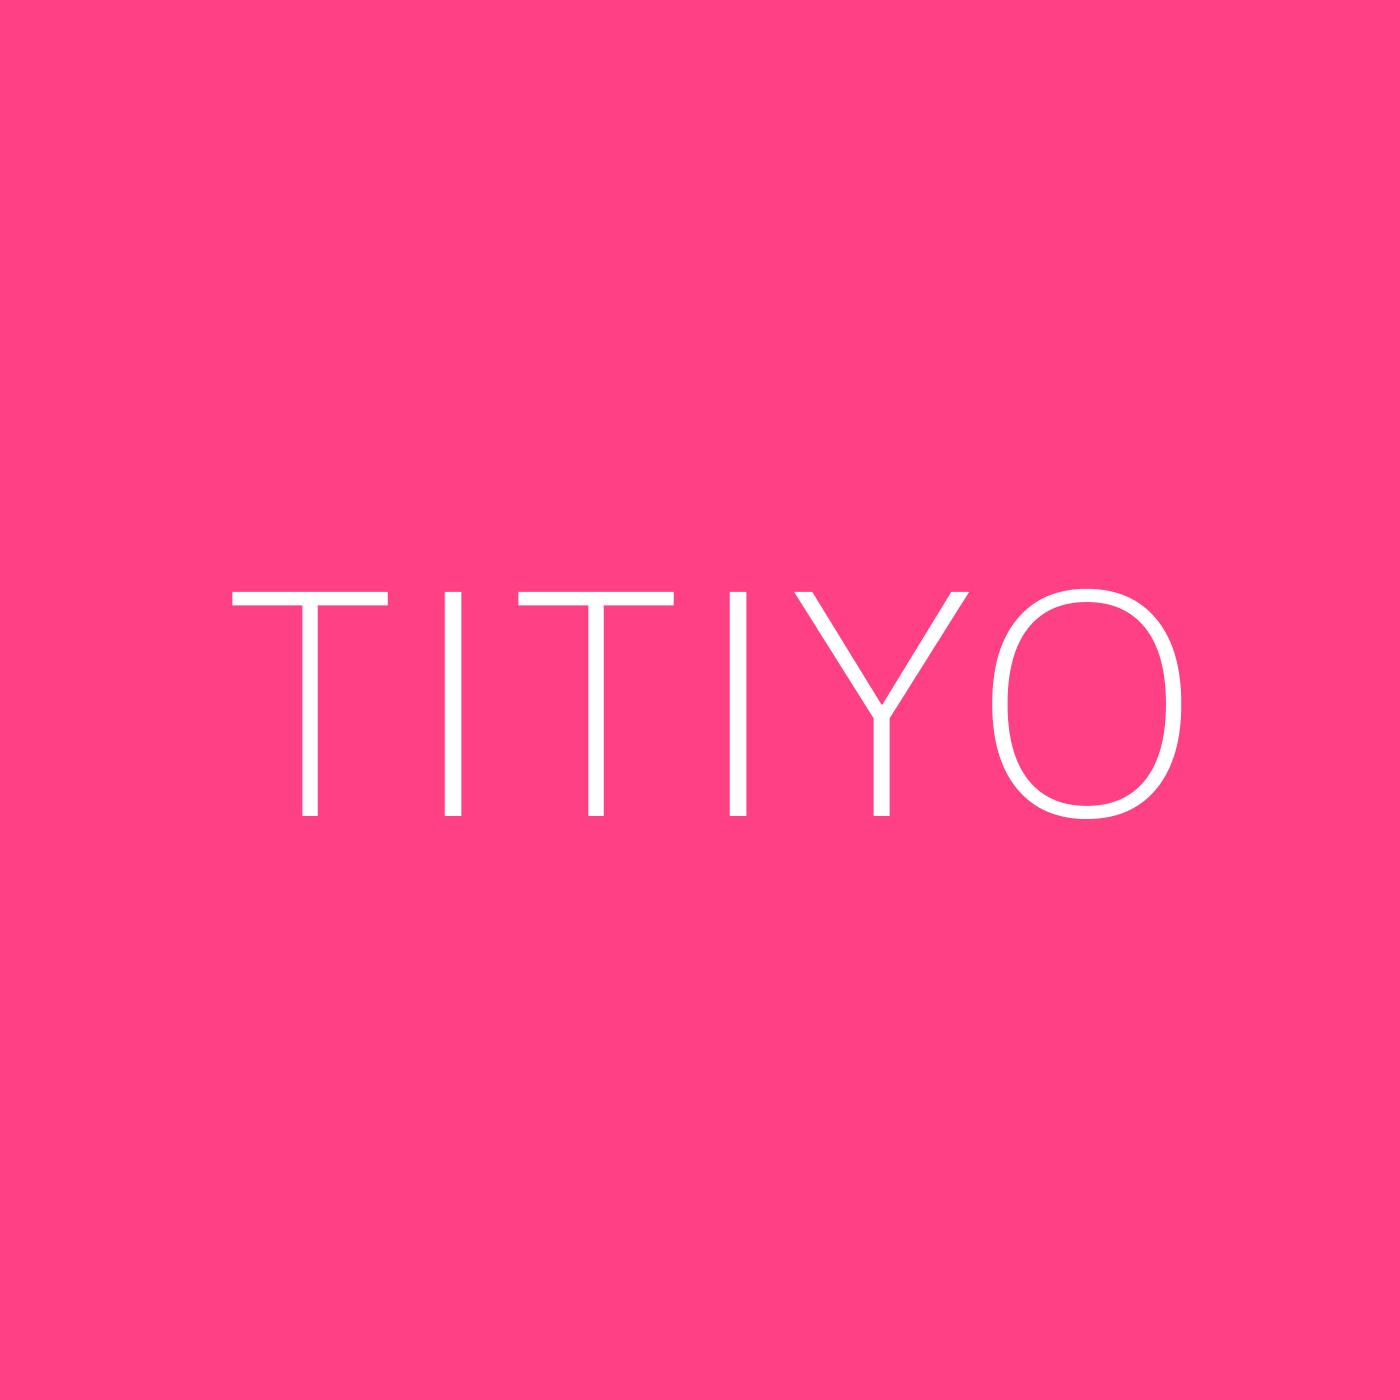 Titiyo Playlist Artwork